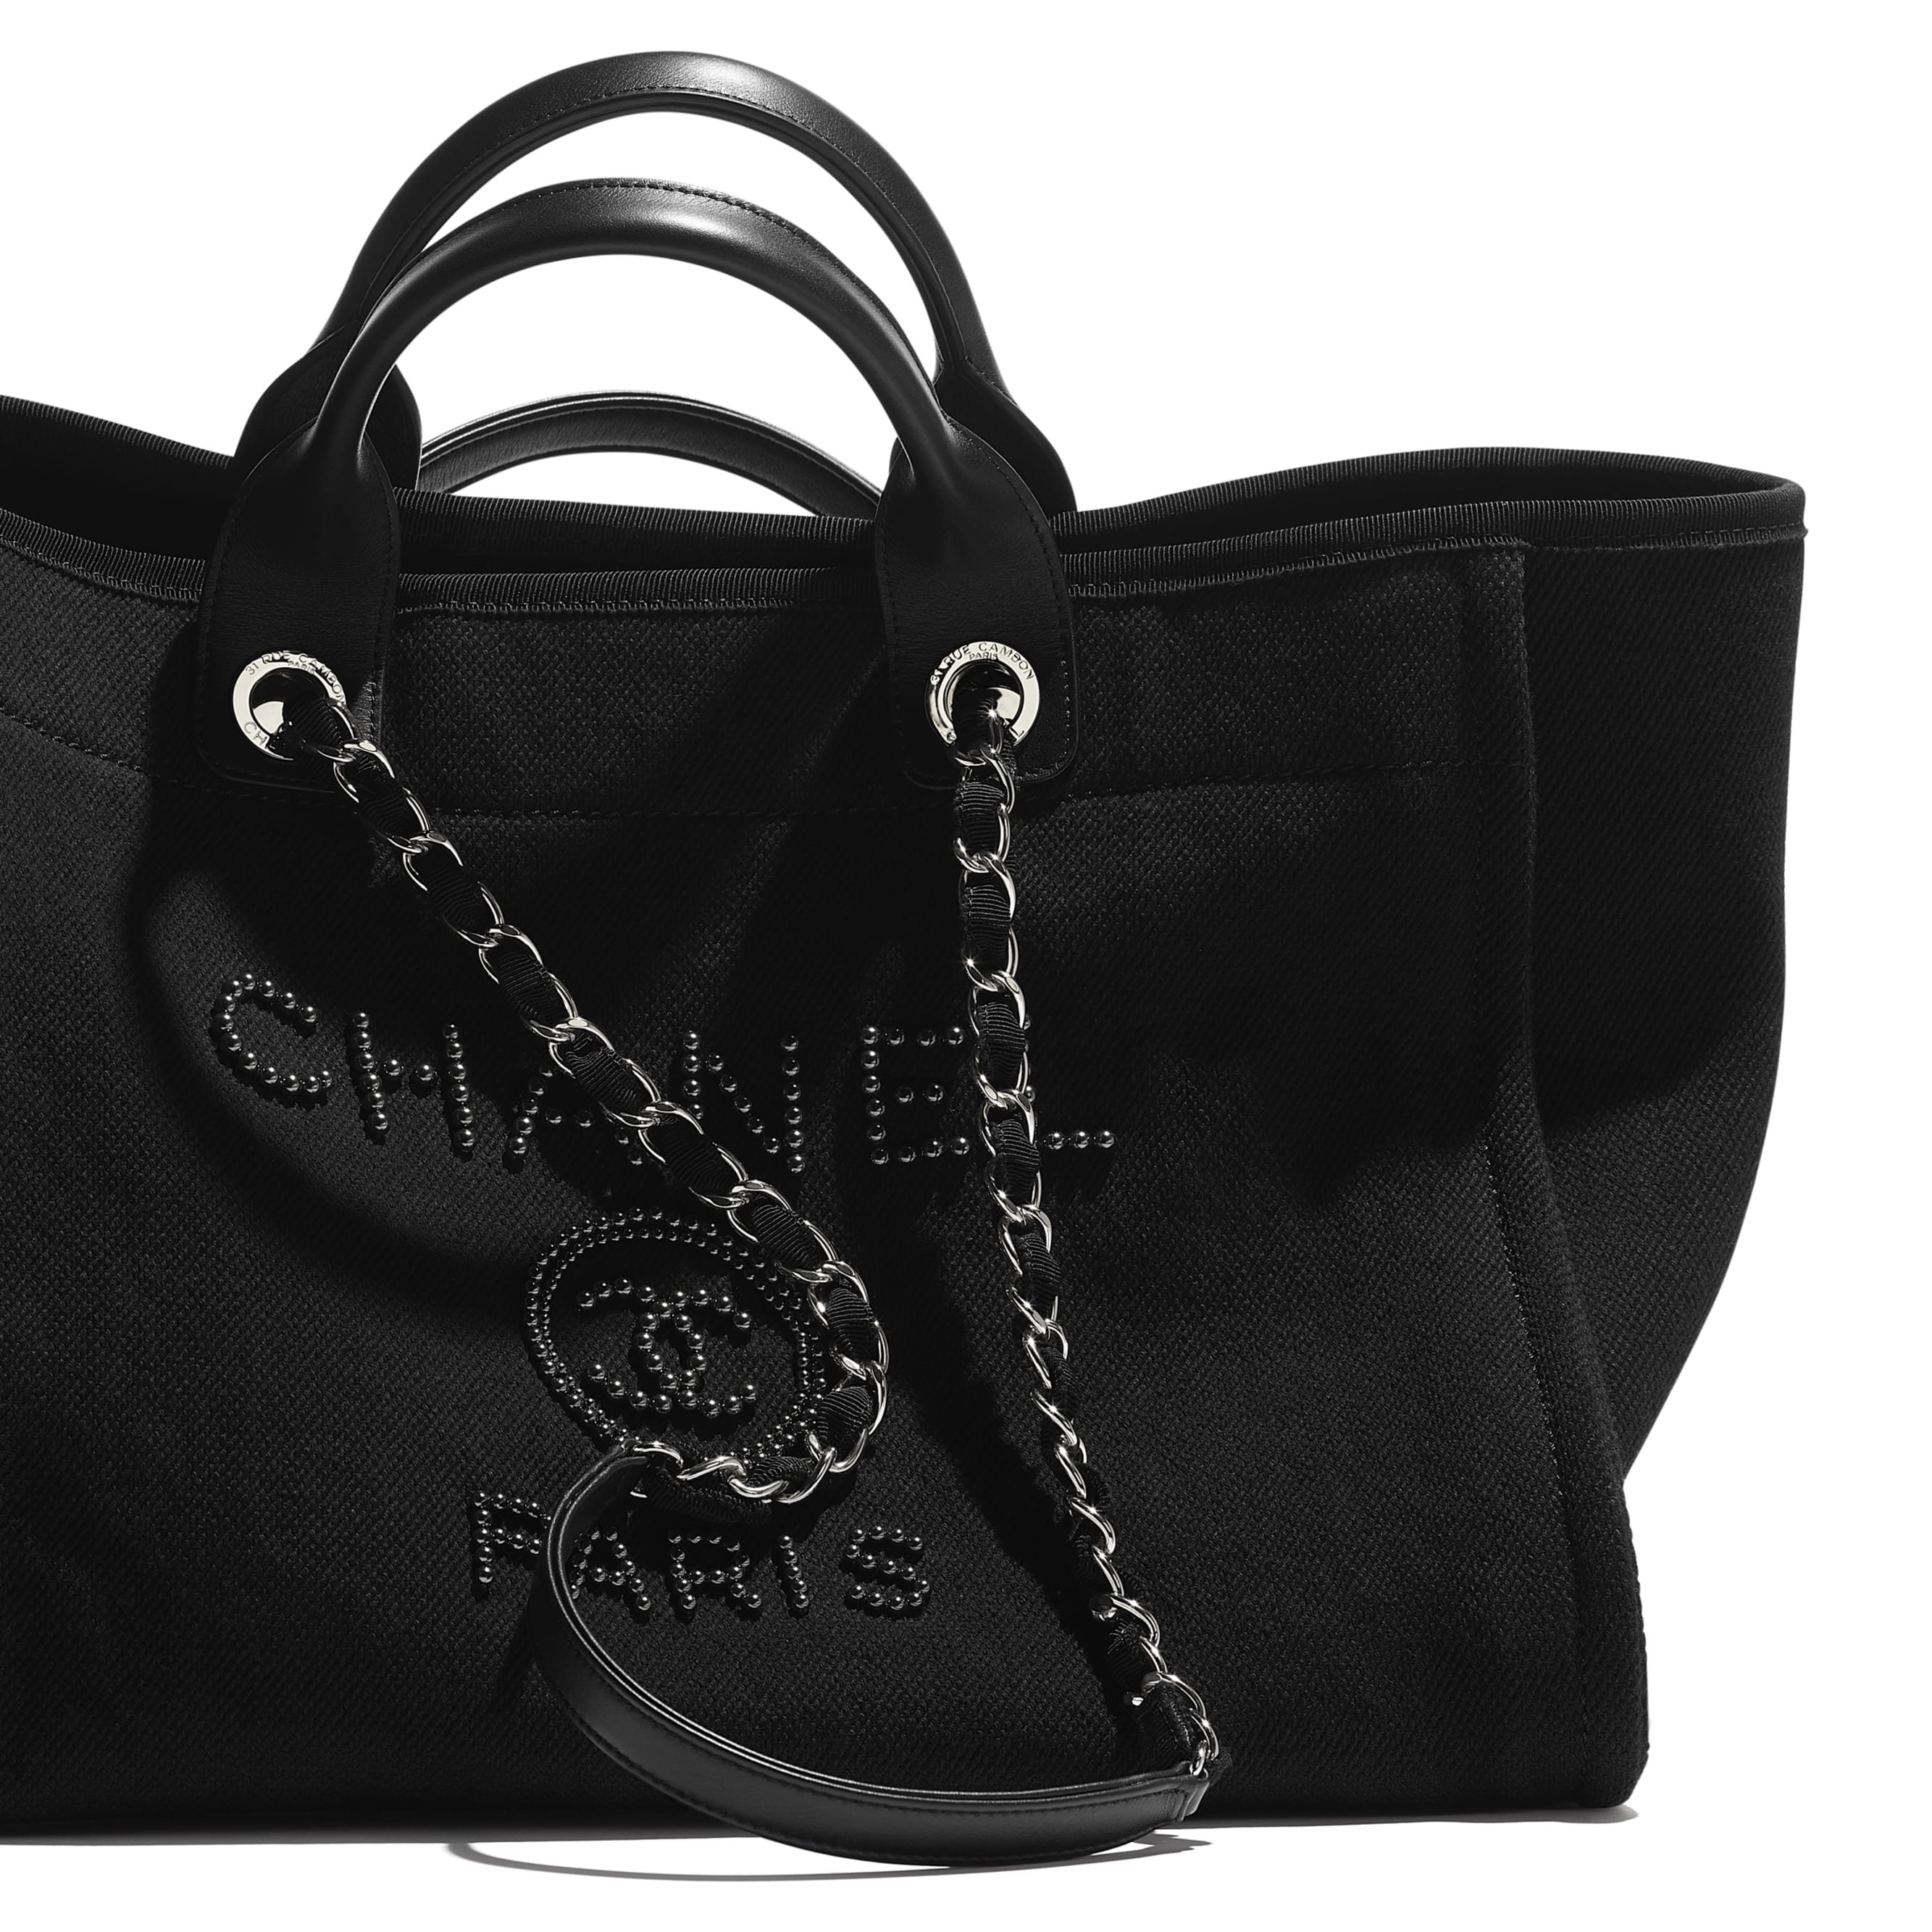 Large Tote - Black - Mixed Fibers, Imitation Pearls, Silver-Tone Metal - CHANEL - Extra view - see standard sized version